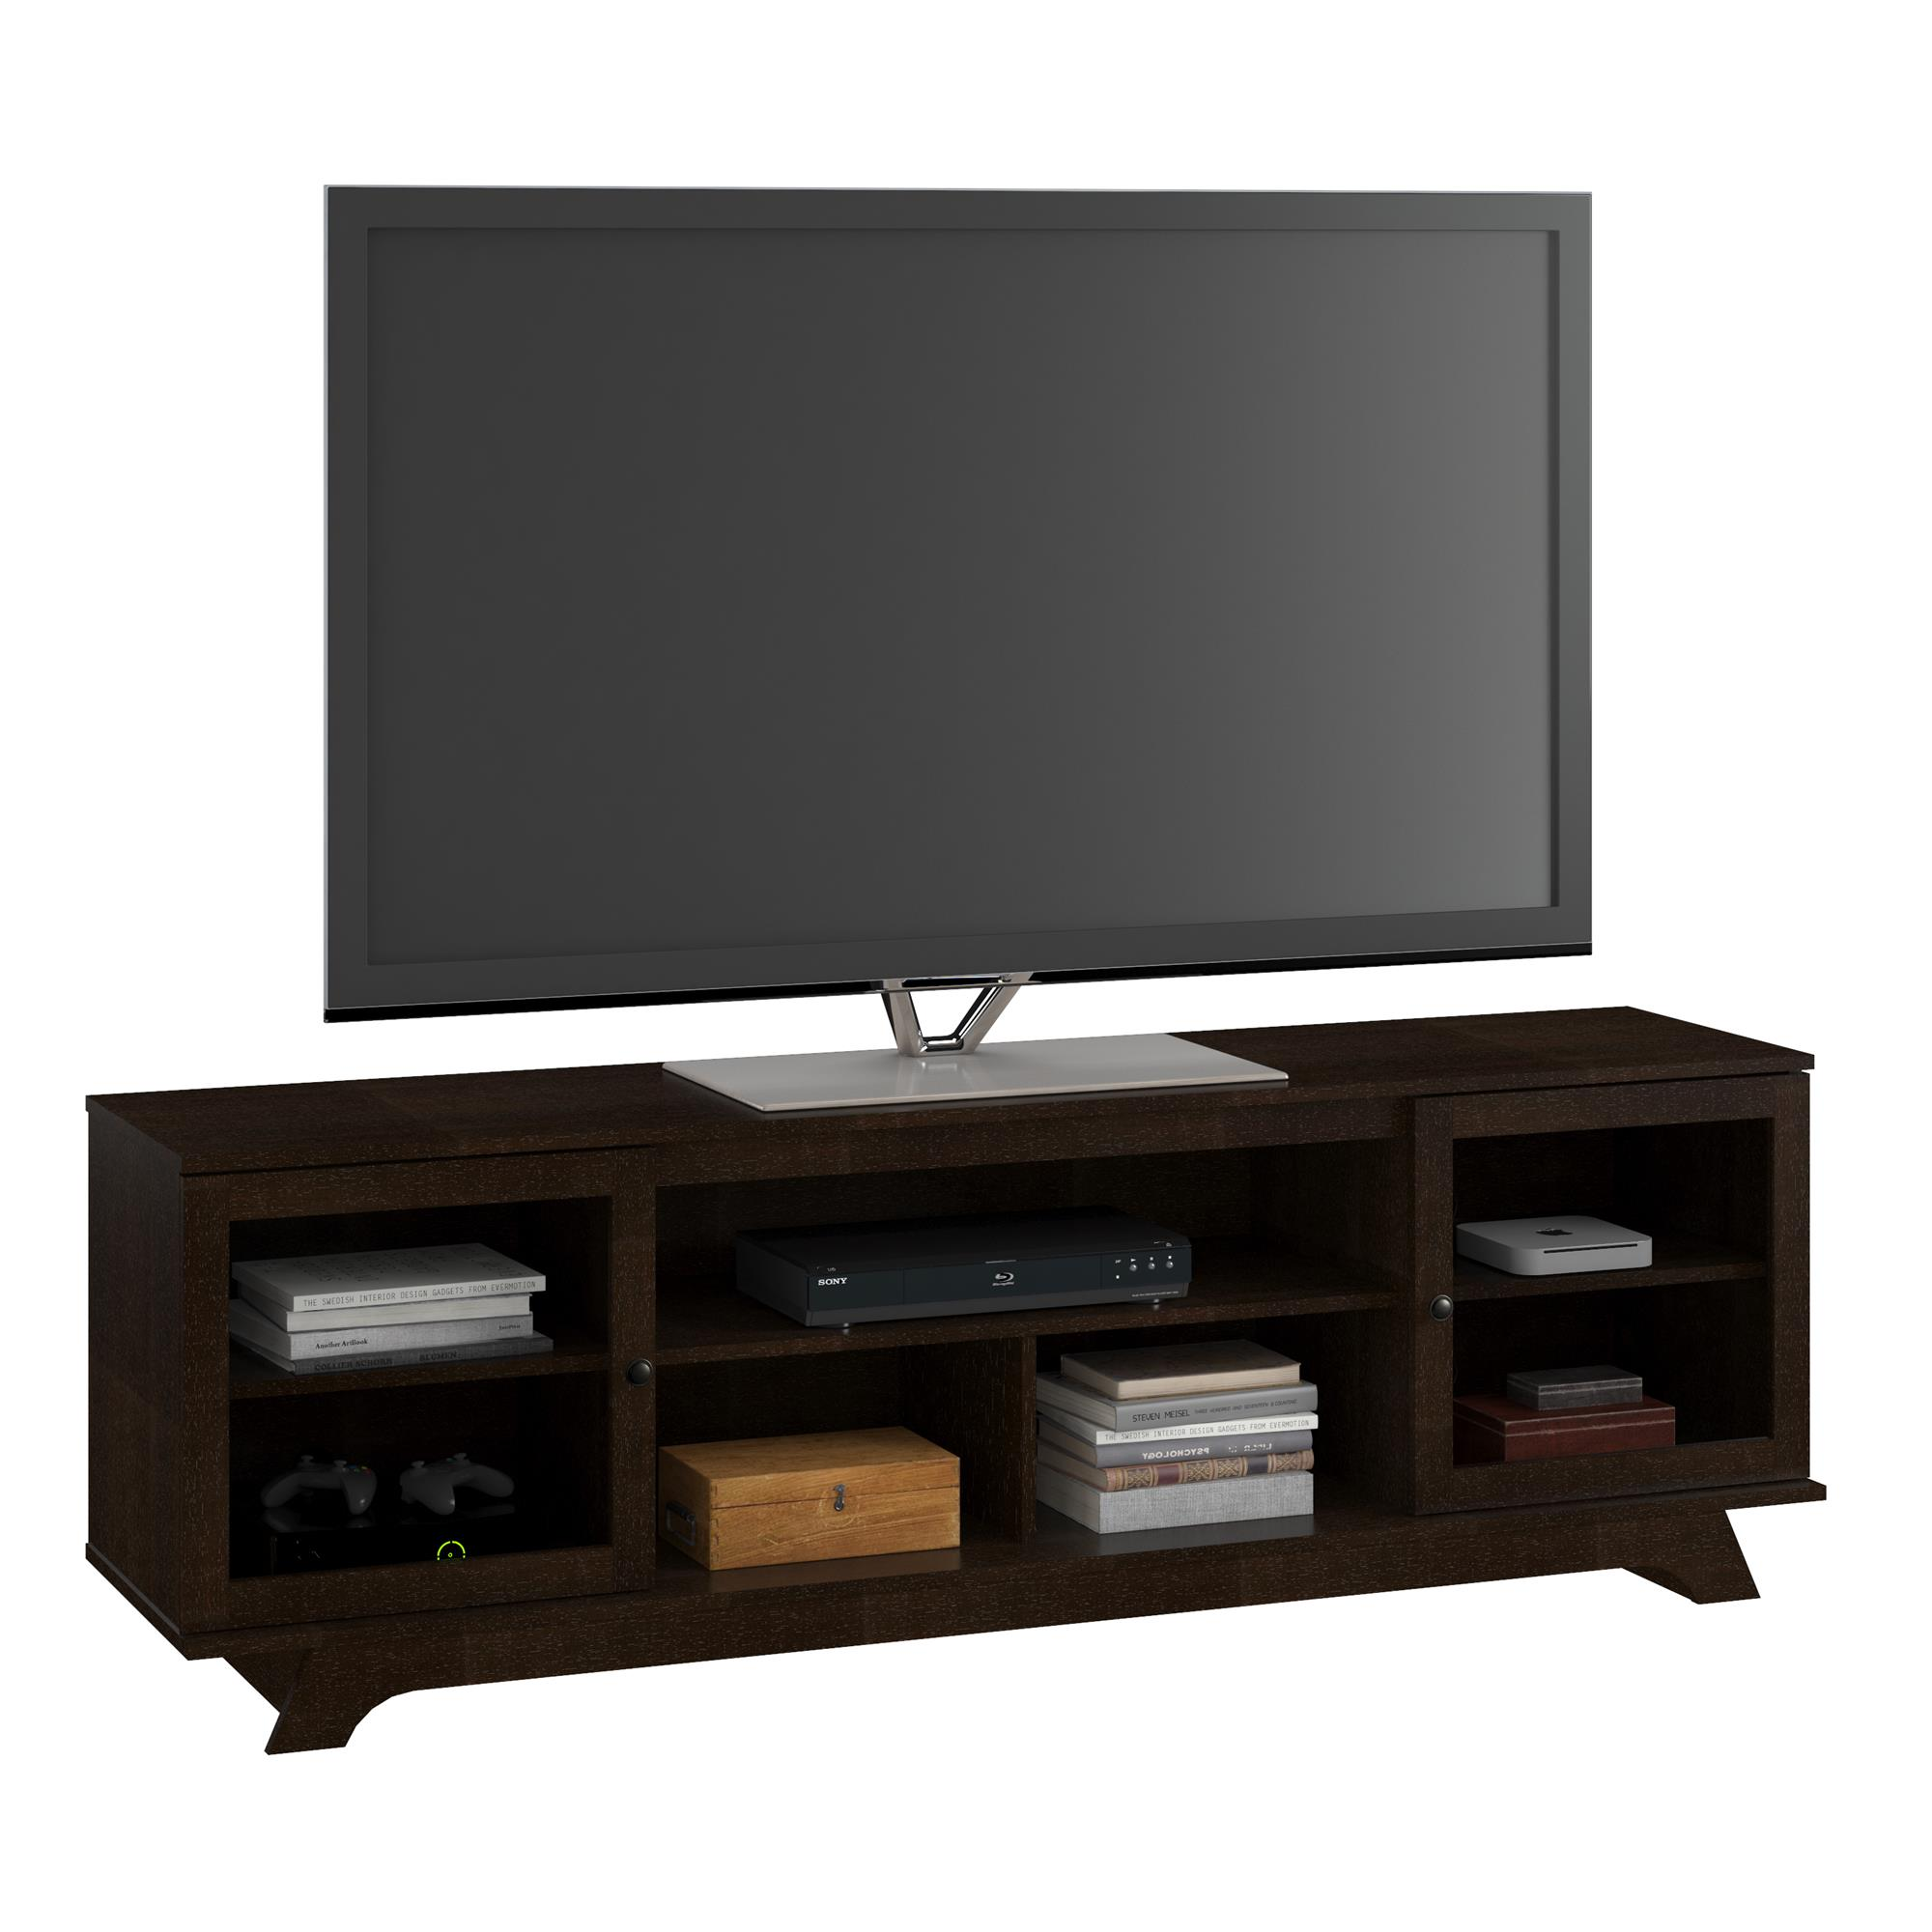 "Ameriwood Home Amberley TV Stand for TVs up to 80"", Espresso"